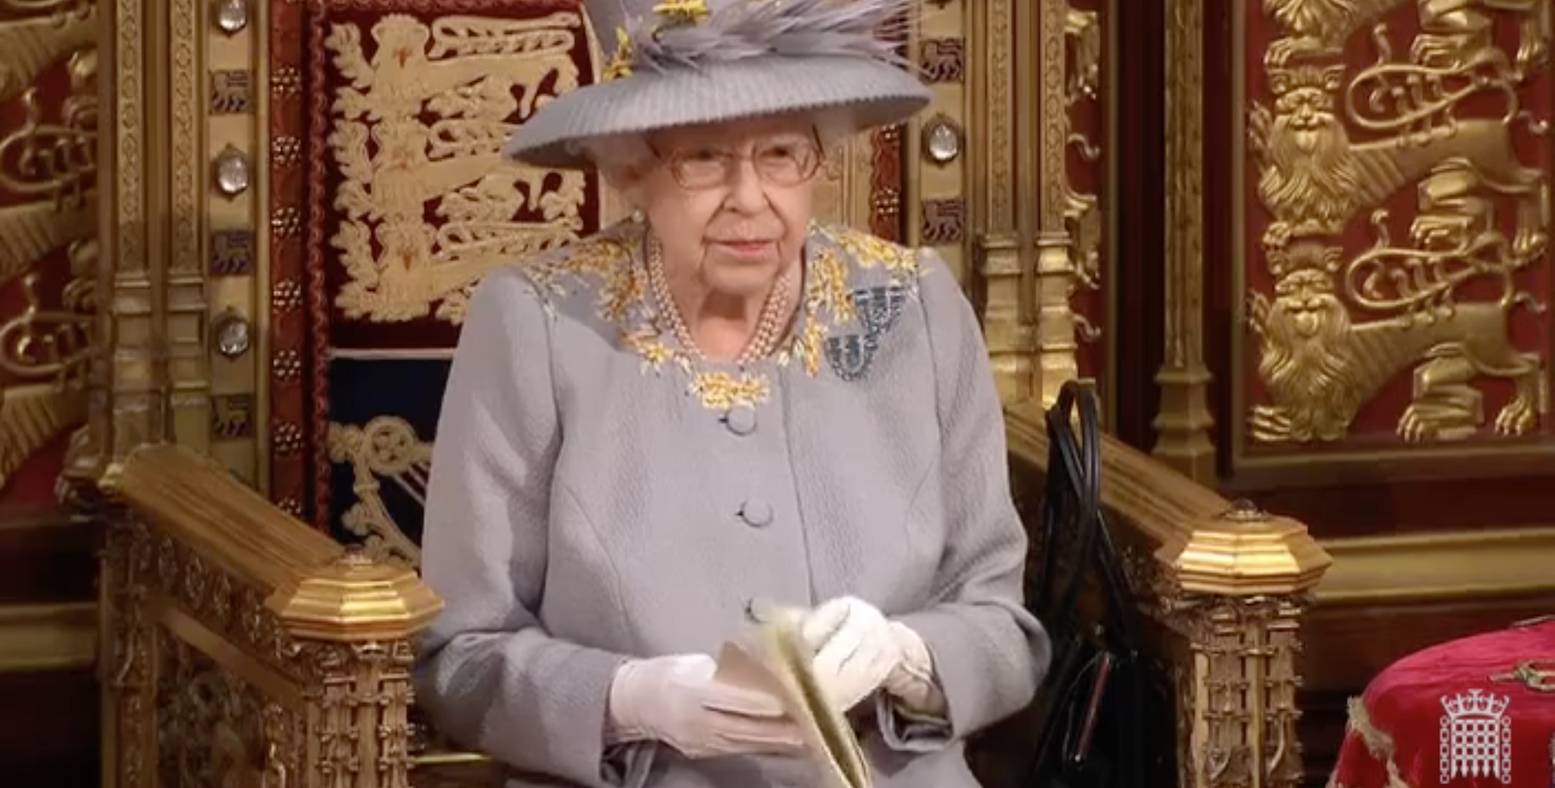 Lifelong learning, R&D and new research agency get mention in Queen's speech